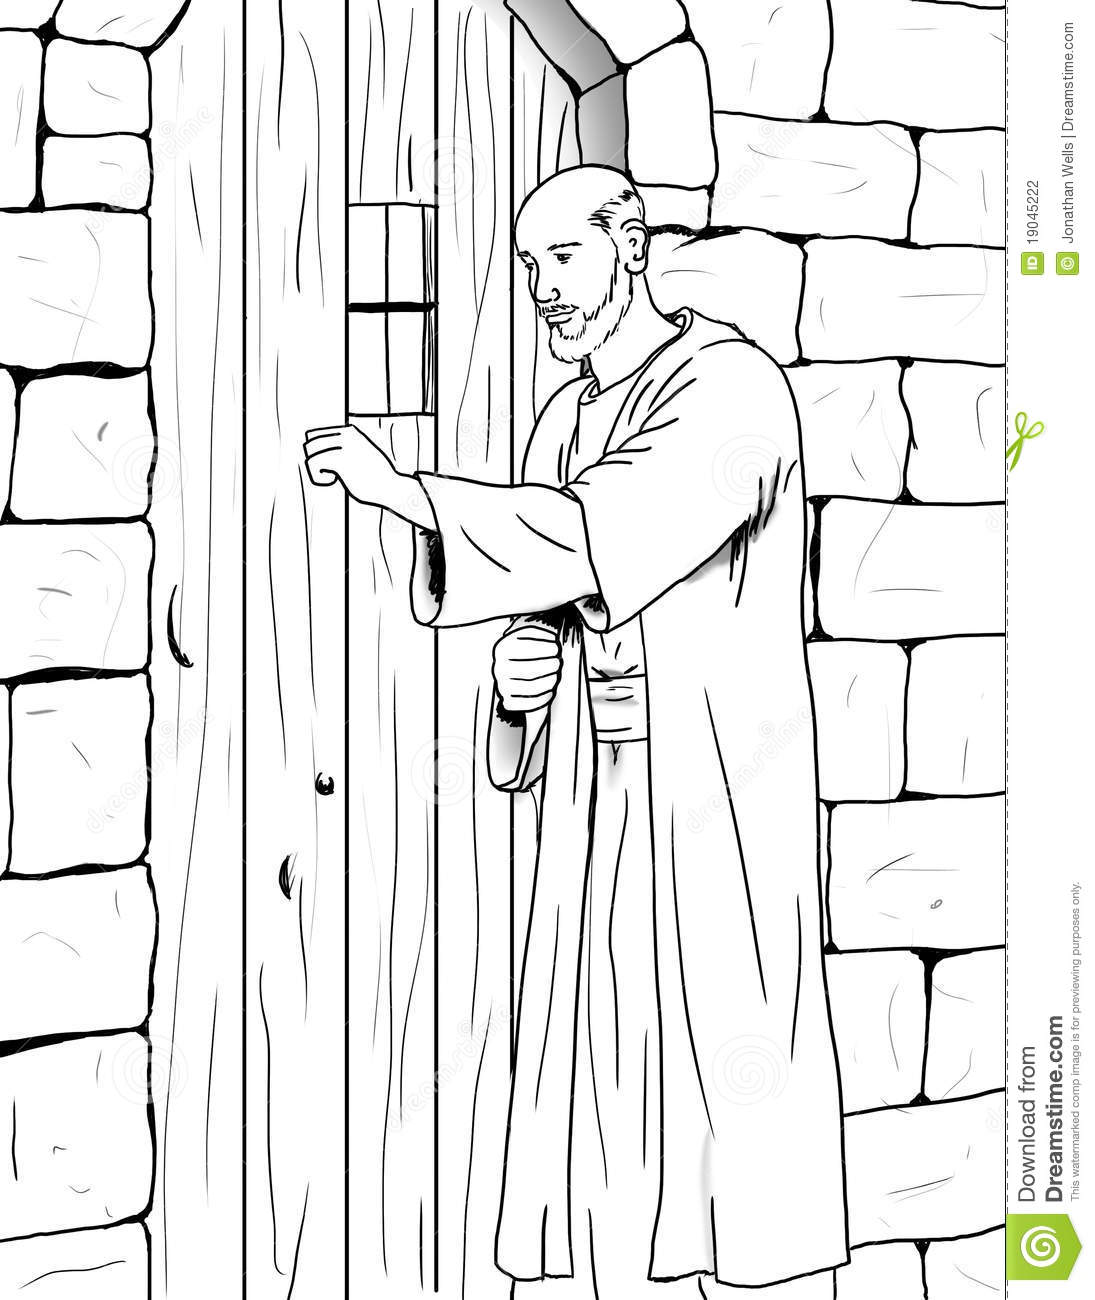 Black And White Drawing Of A Man Knocking On A Door